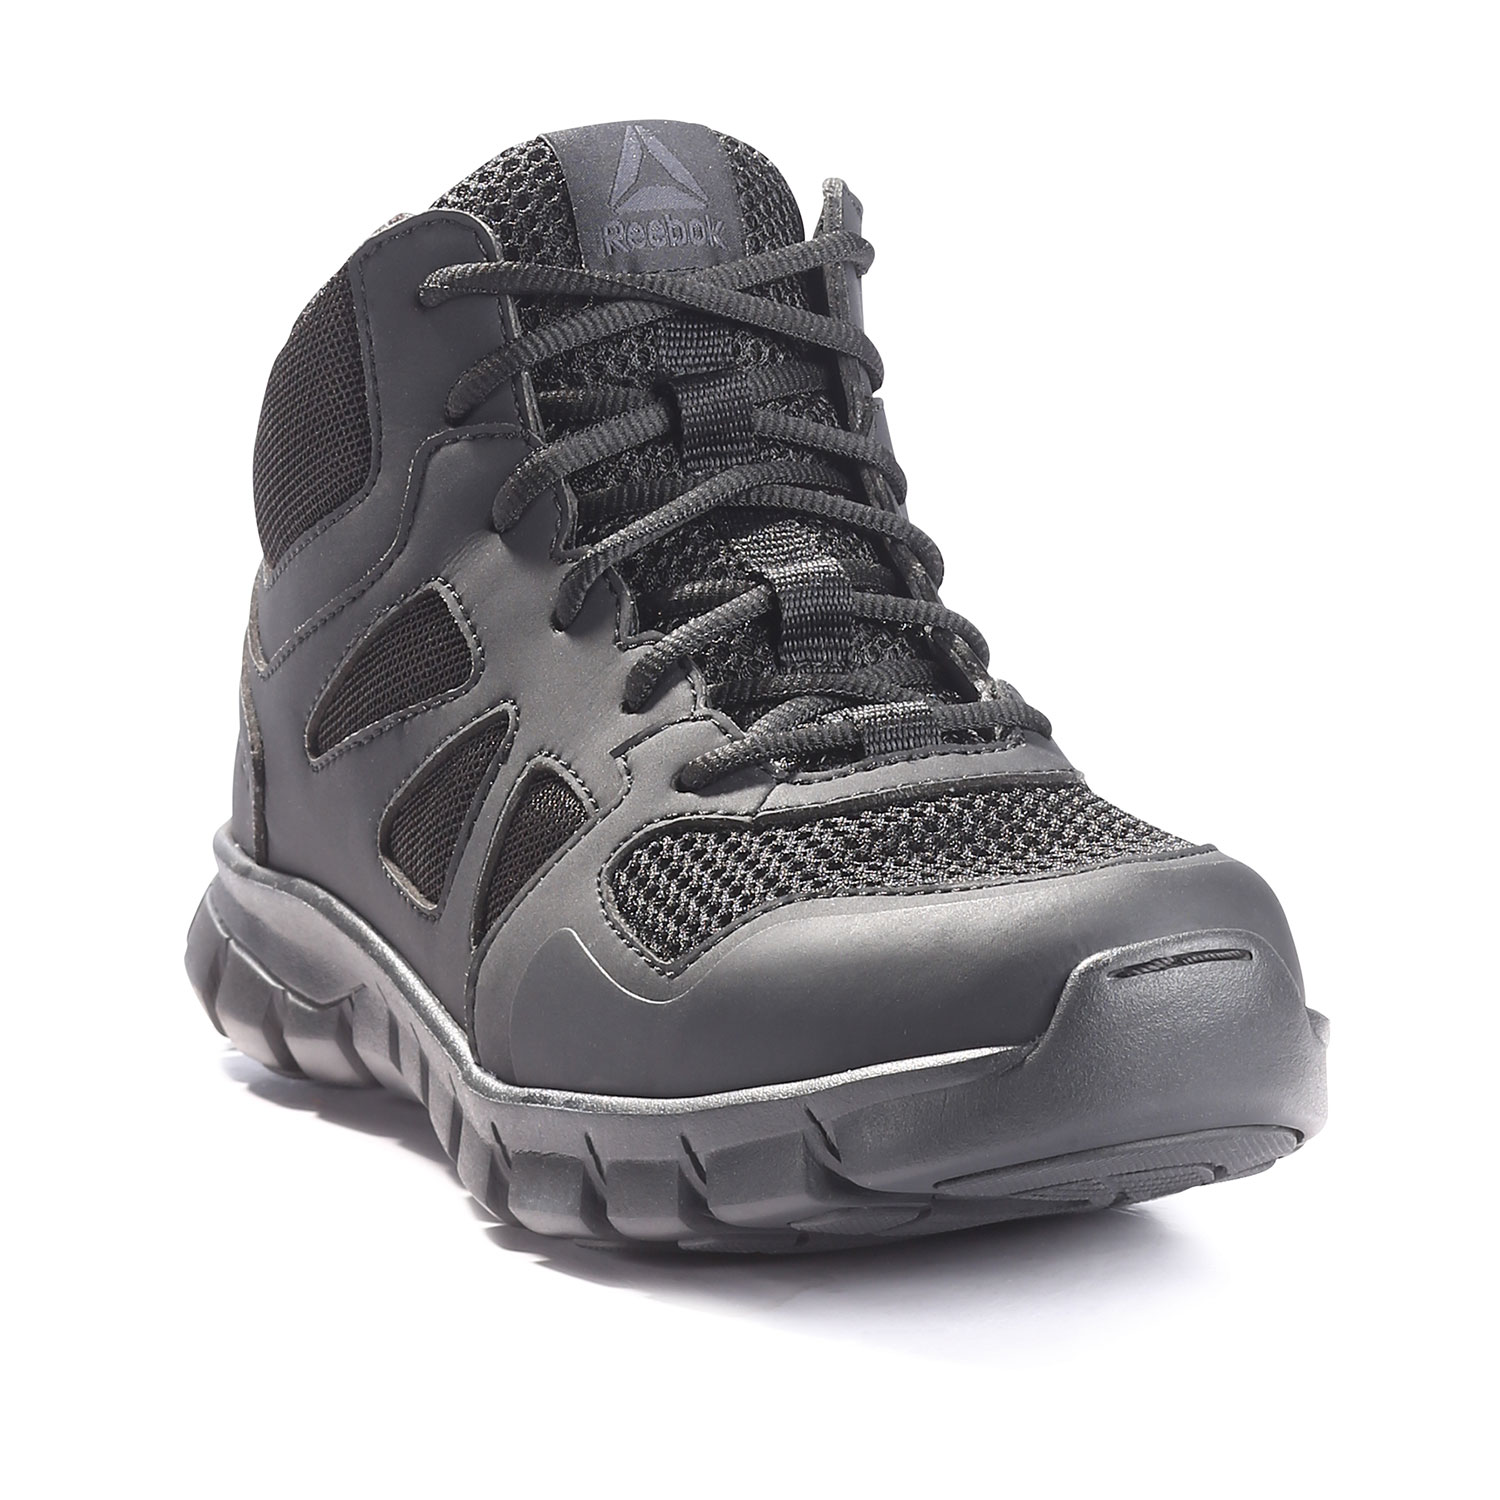 905be25bfe791f Reebok Sublite Cushion Tactical Mid